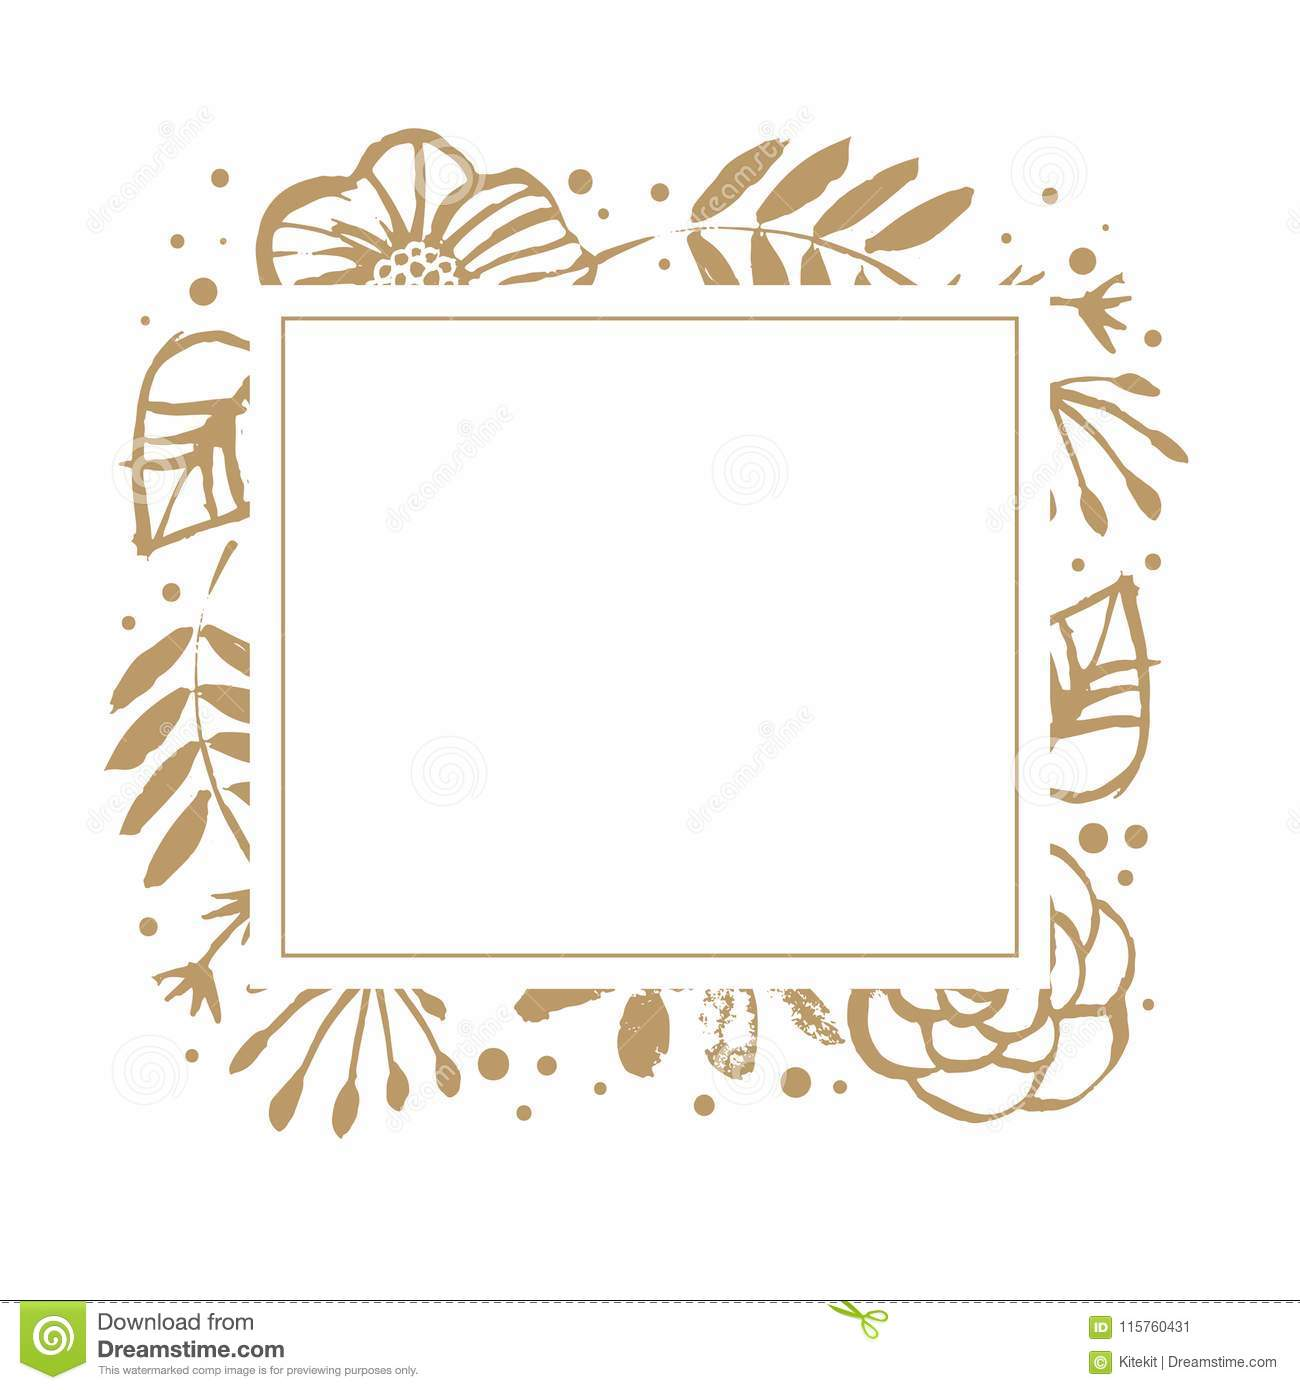 flower frame template for wedding invitation and greeting card